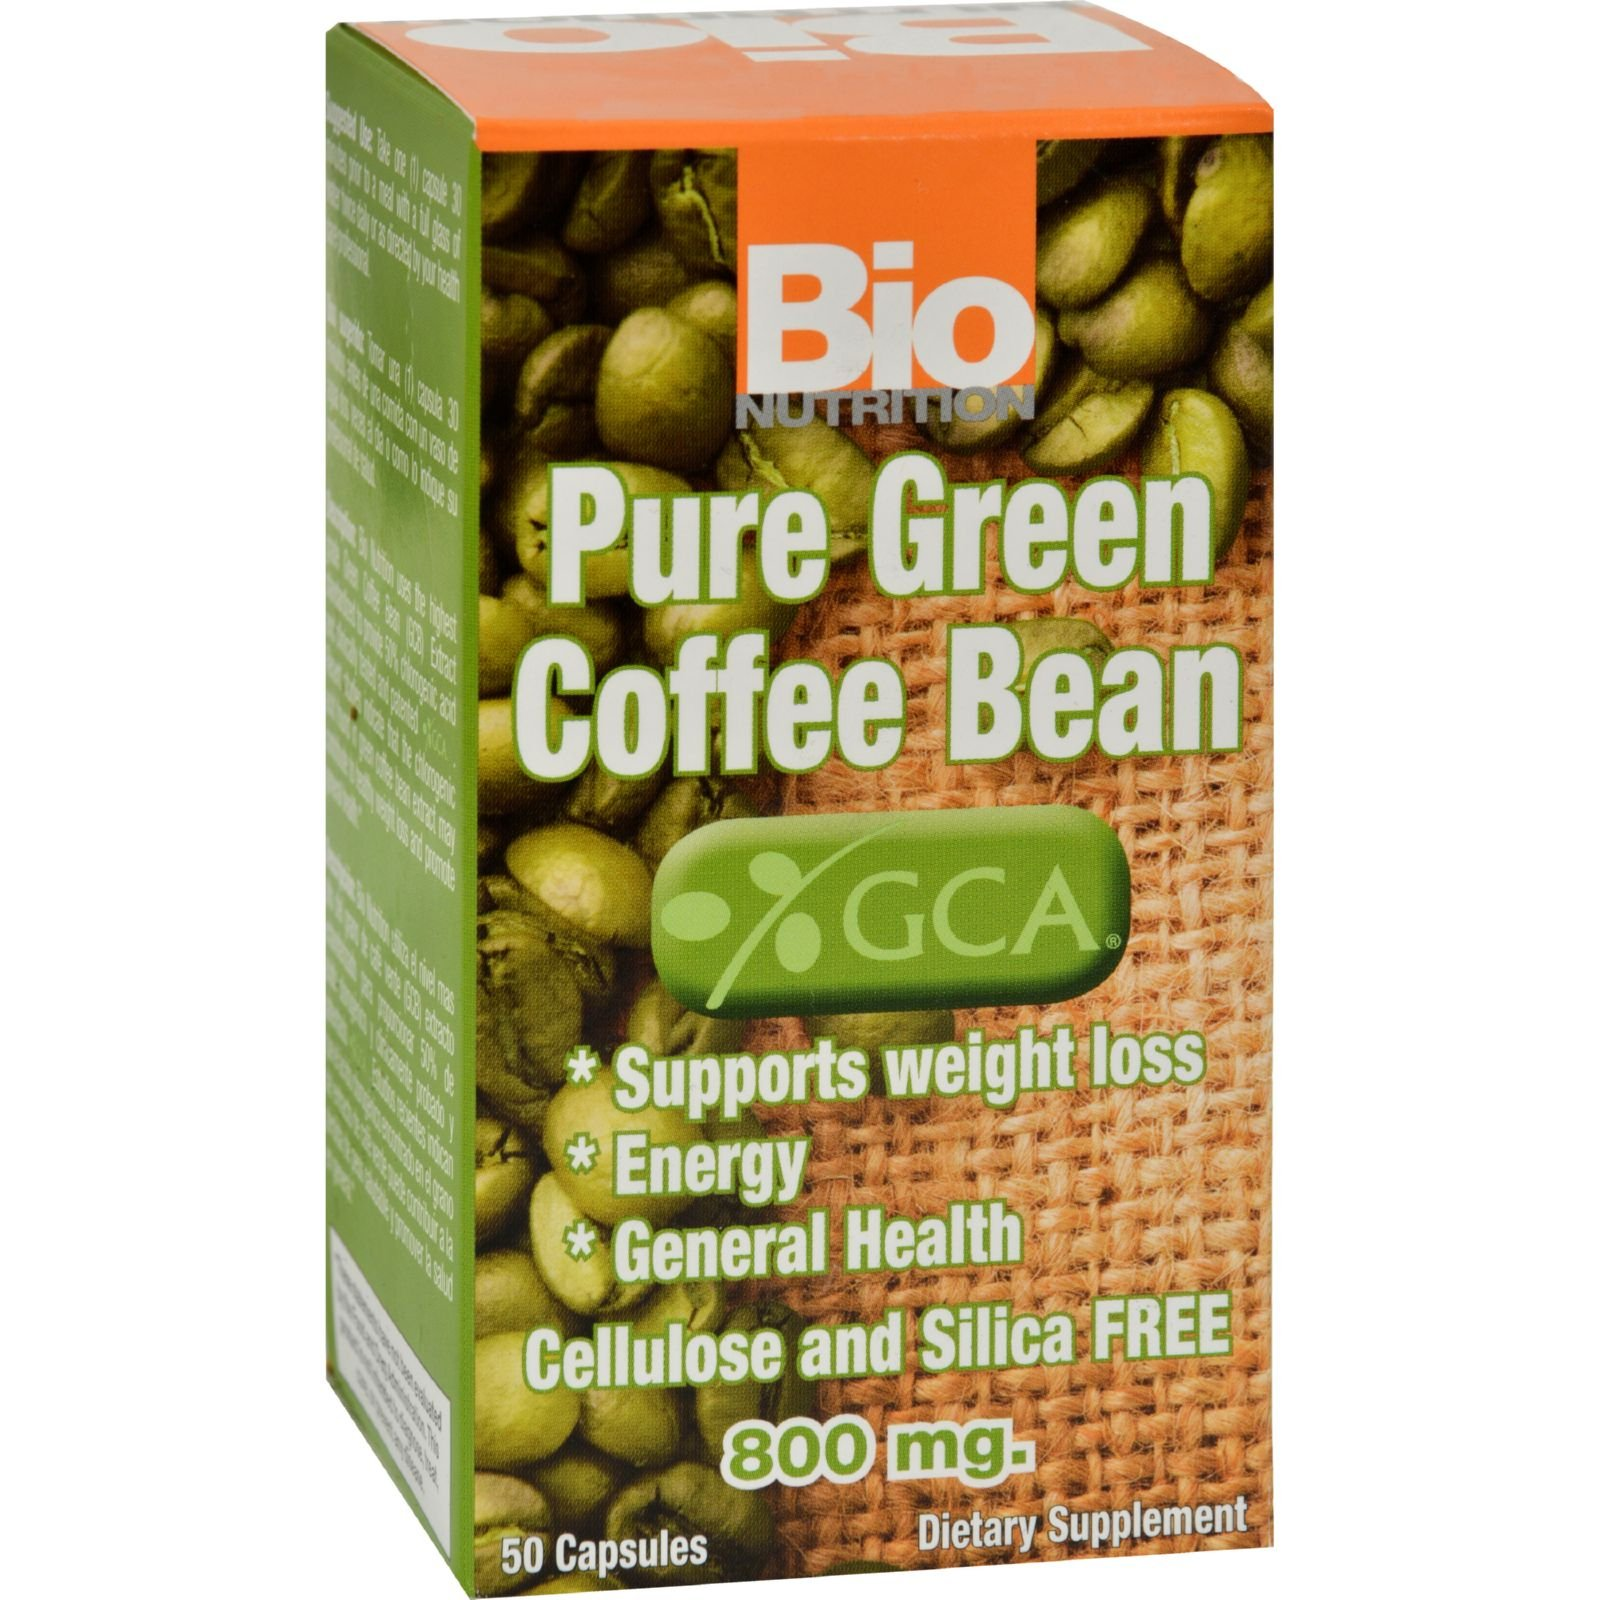 Bio Nutrition Pure Green Coffee Bean - Supports Weight Loss - Cellulose and Silica Free - 50 Gelcaps (Pack of 2)